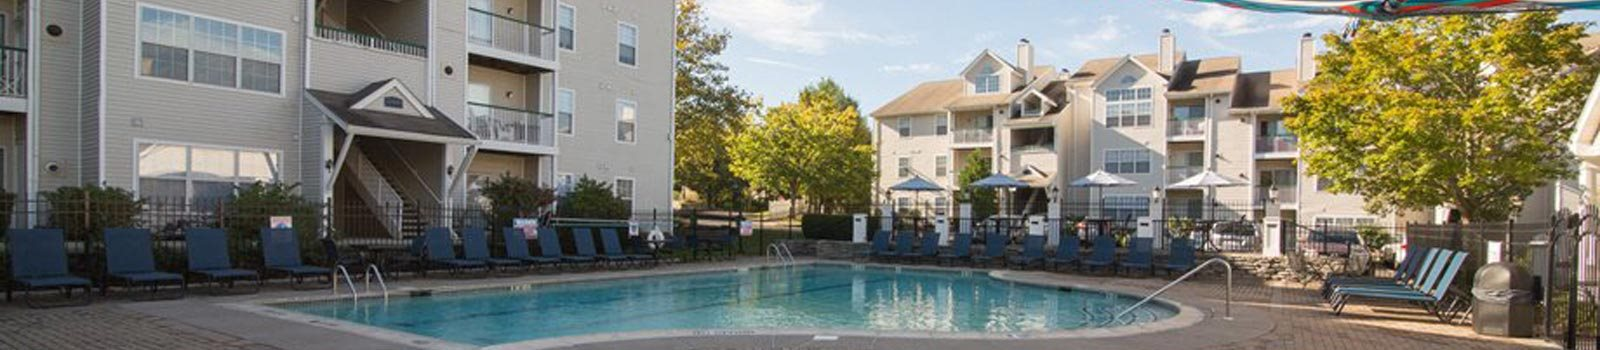 Comfortable Apartments with Thoughtful Amenities at Town Walk at Hamden Hills, Hamden, CT, 06518